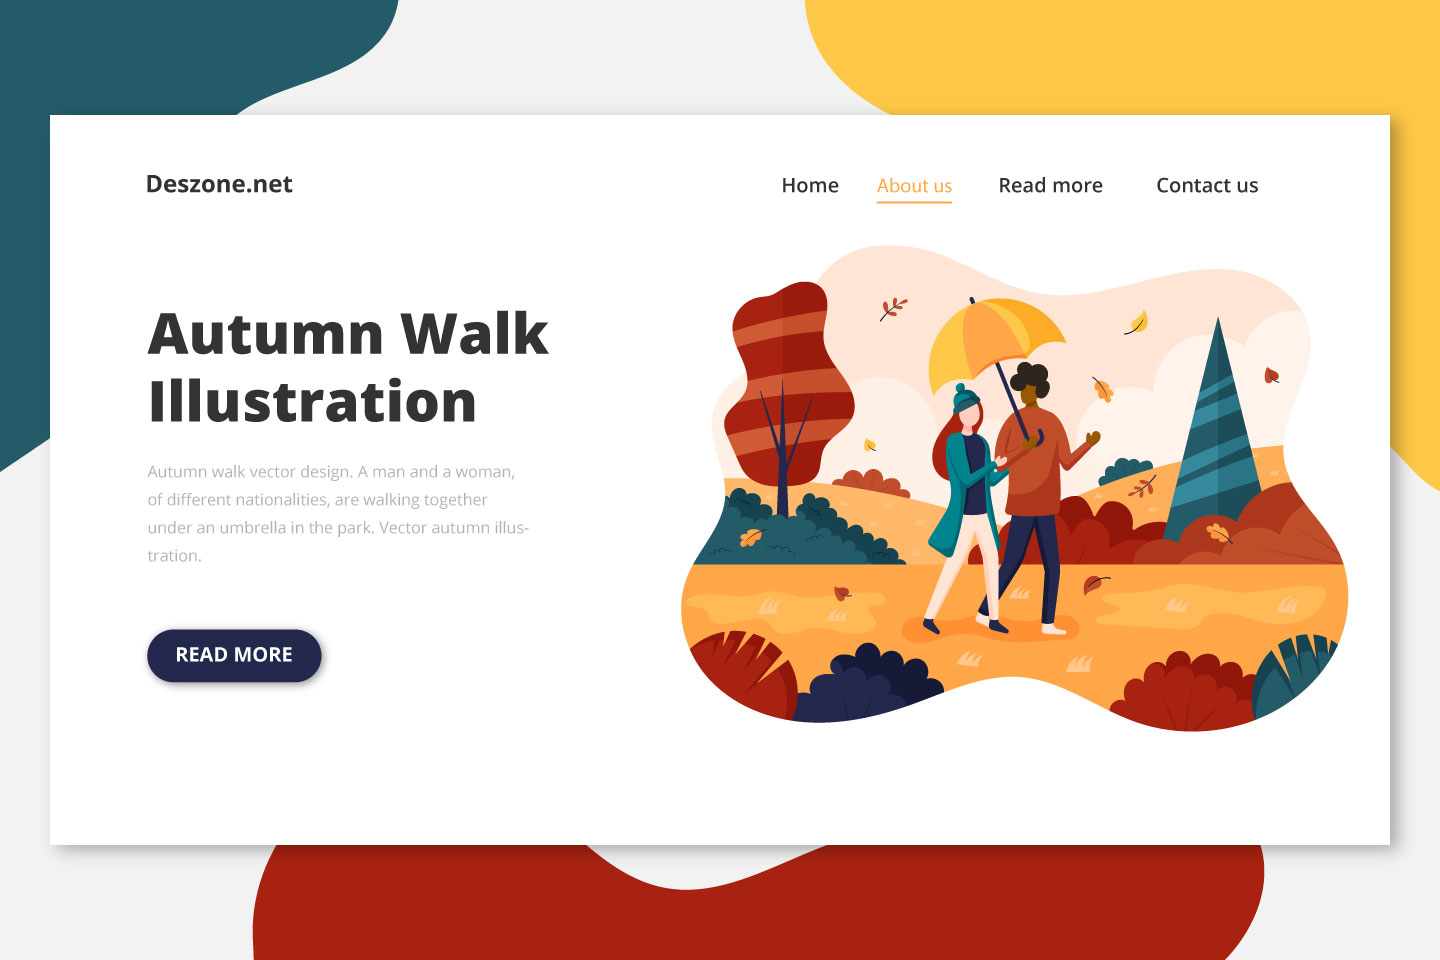 autumn walk vector design graphicsurf com deszone net autumn walk vector design